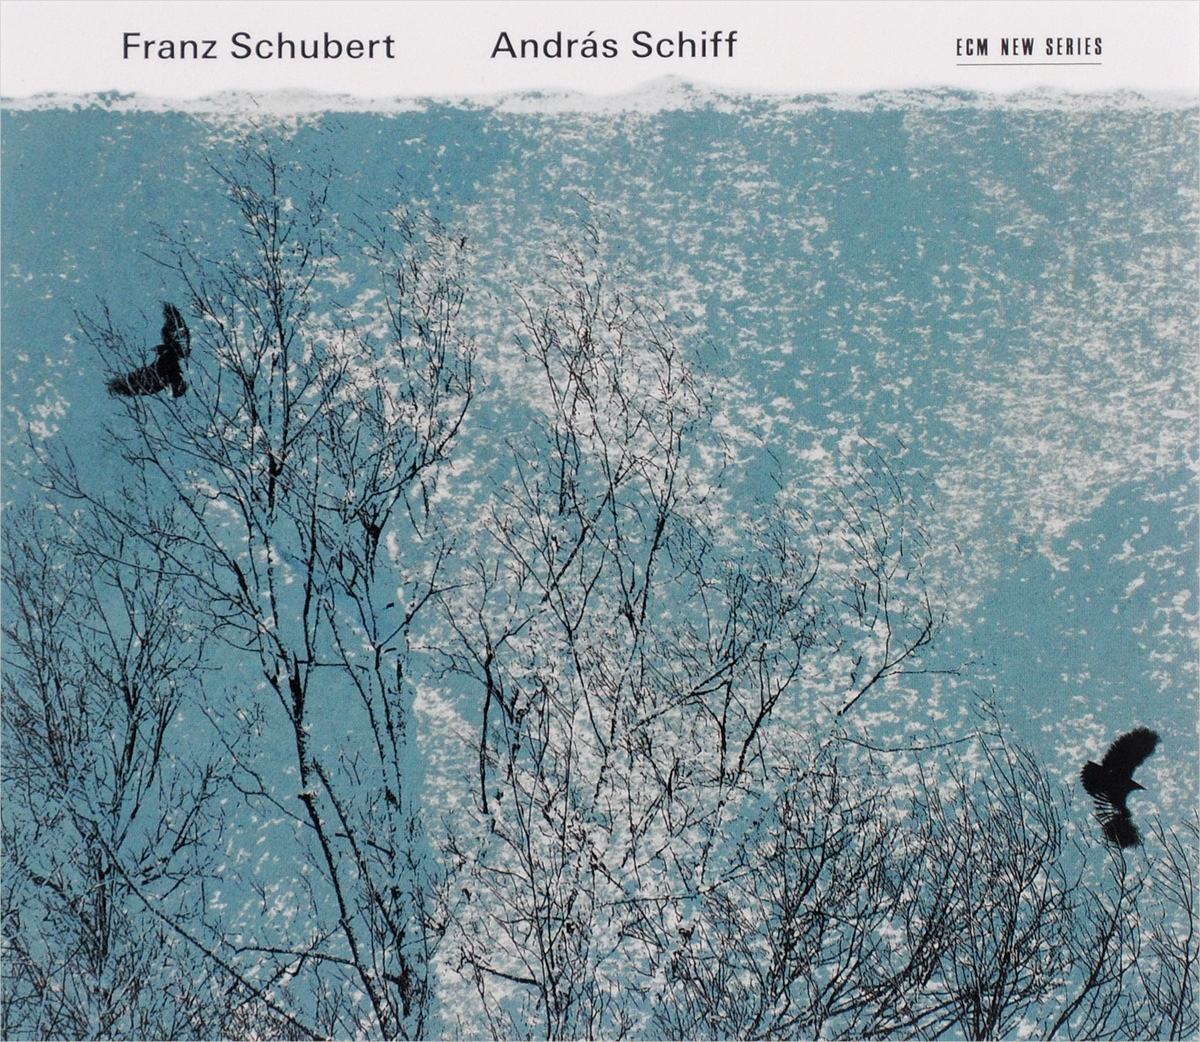 Андрас Шифф Andras Schiff. Franz Schubert (2 CD) kim marshall rethinking teacher supervision and evaluation how to work smart build collaboration and close the achievement gap